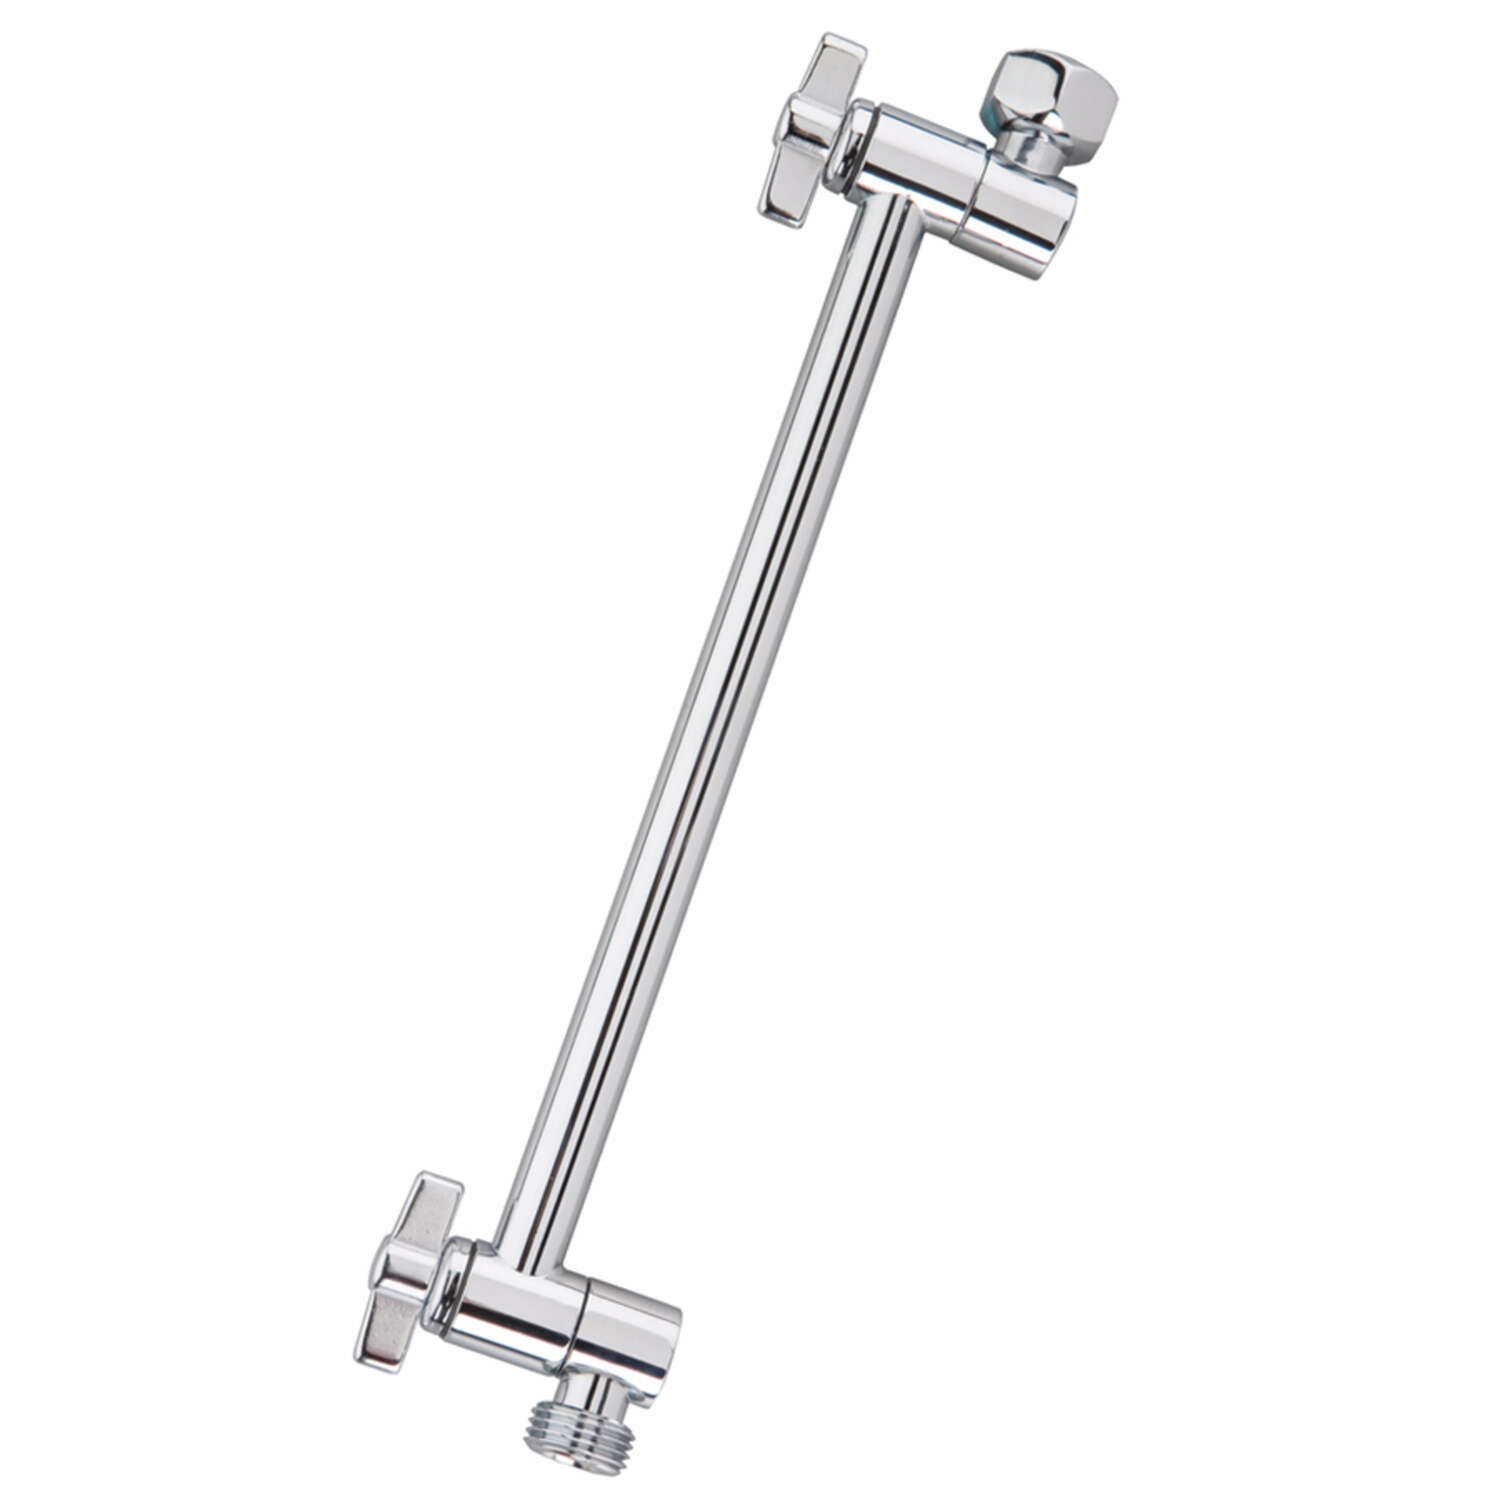 Culligan  RainDisc  Chrome  Chrome  Shower Arm